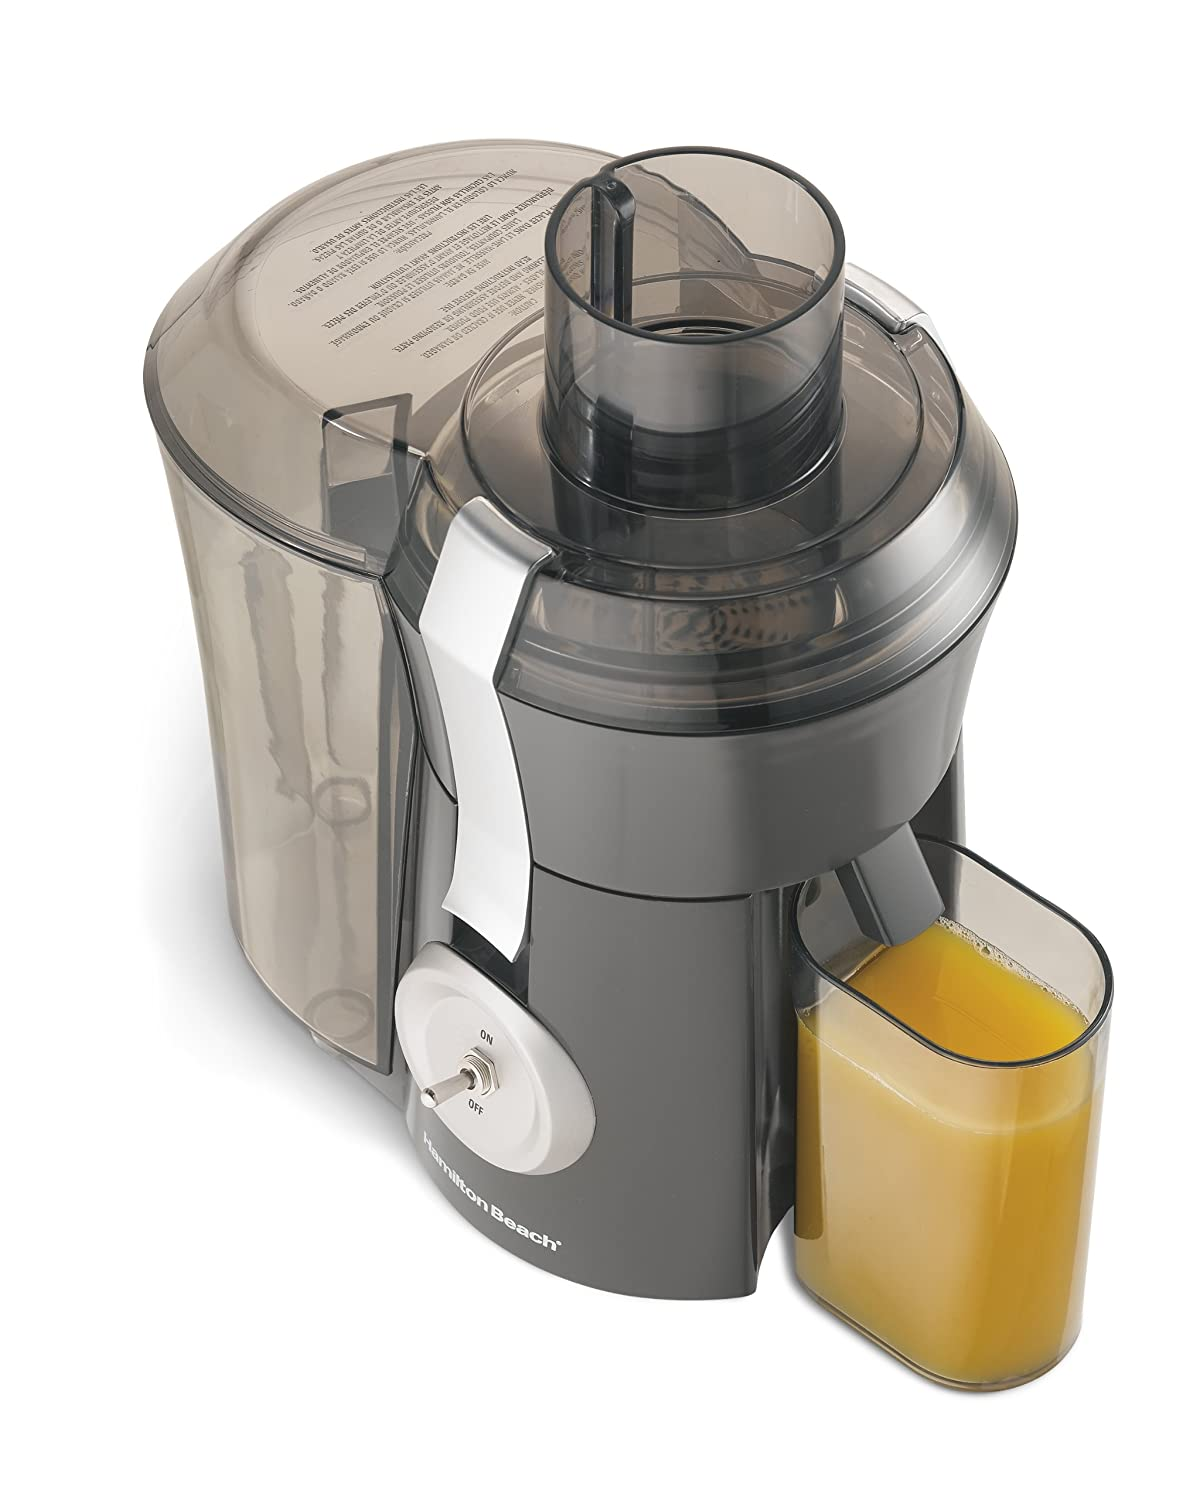 BIG MOUTH JUICE EXTRACTOR Hamilton Beach 67601